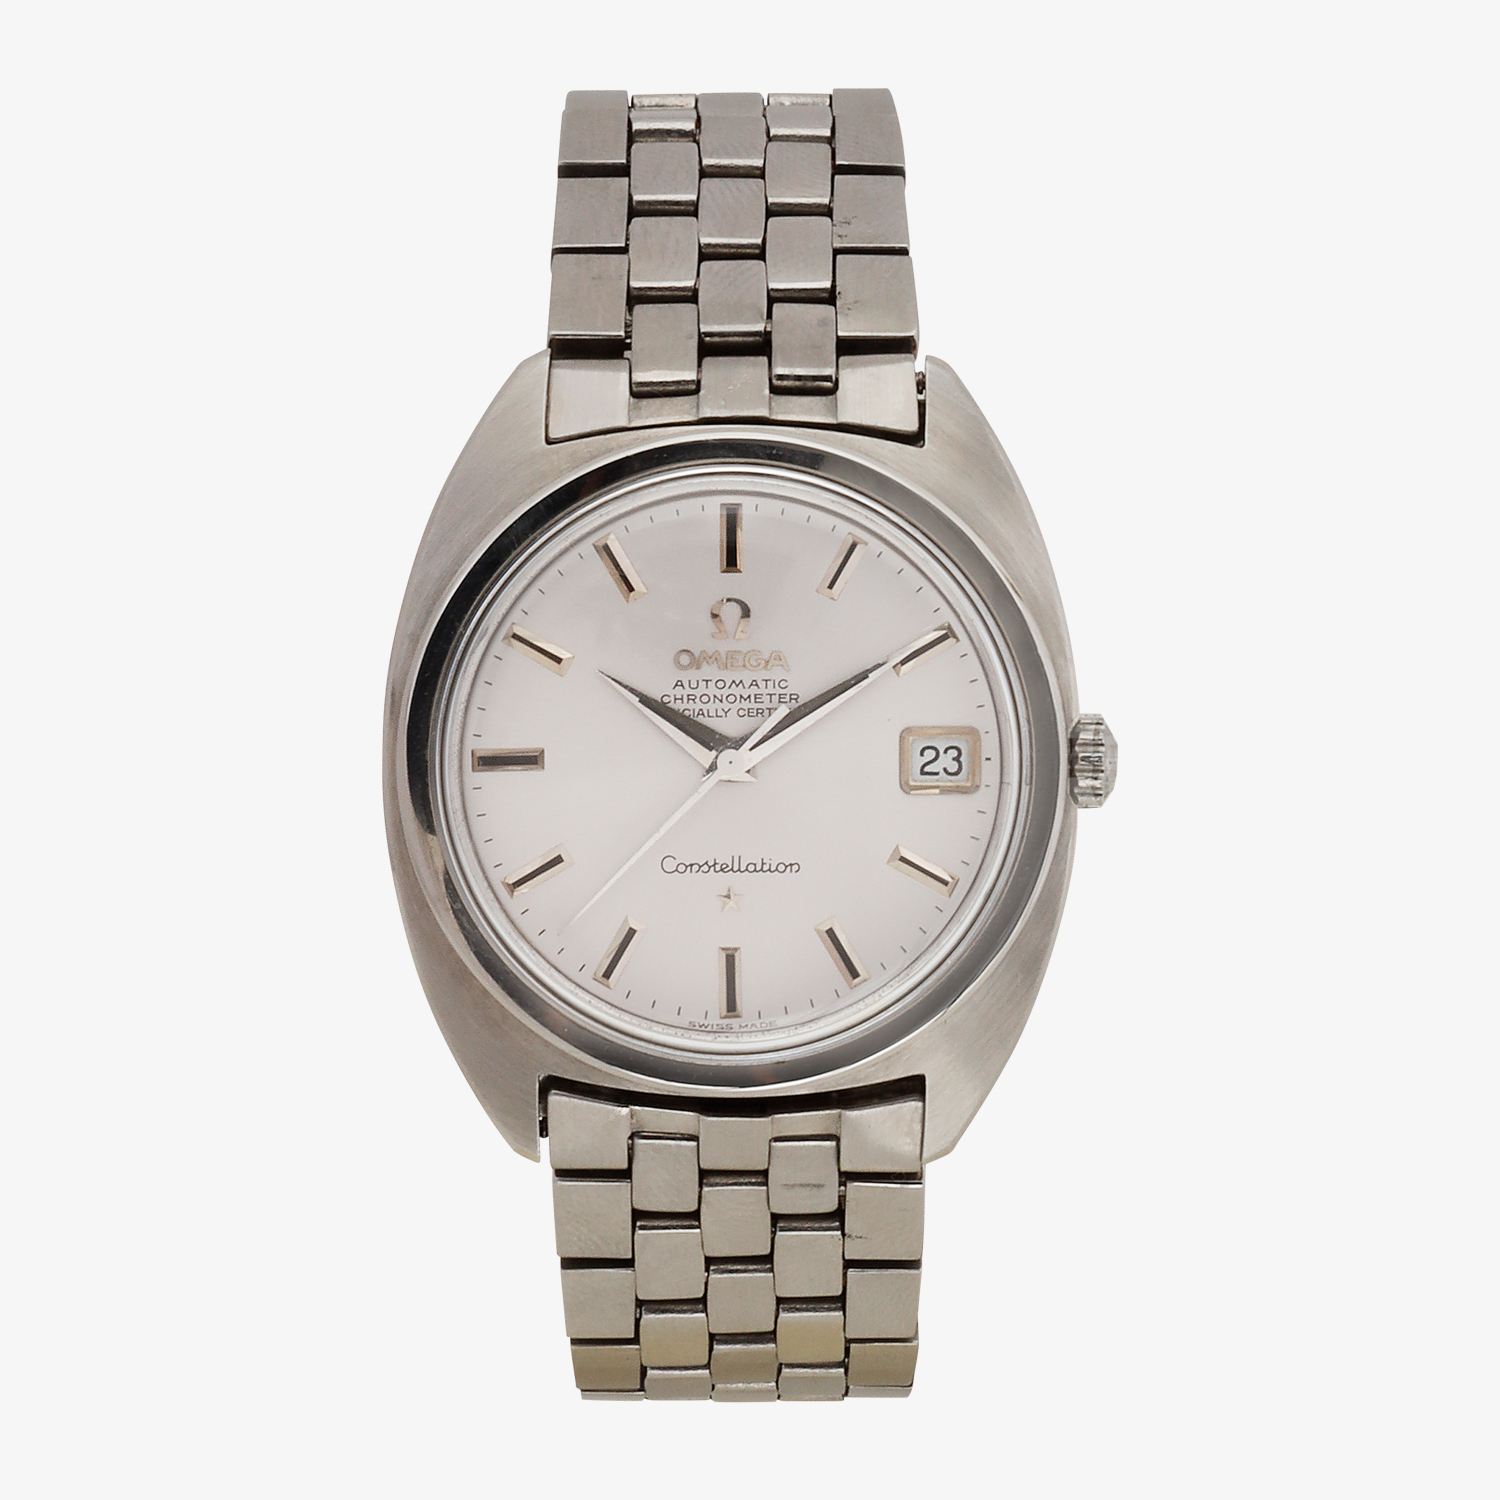 SOLD OUT|OMEGA|Constellation|Automatic - 70's|VINTAGE OMEGA